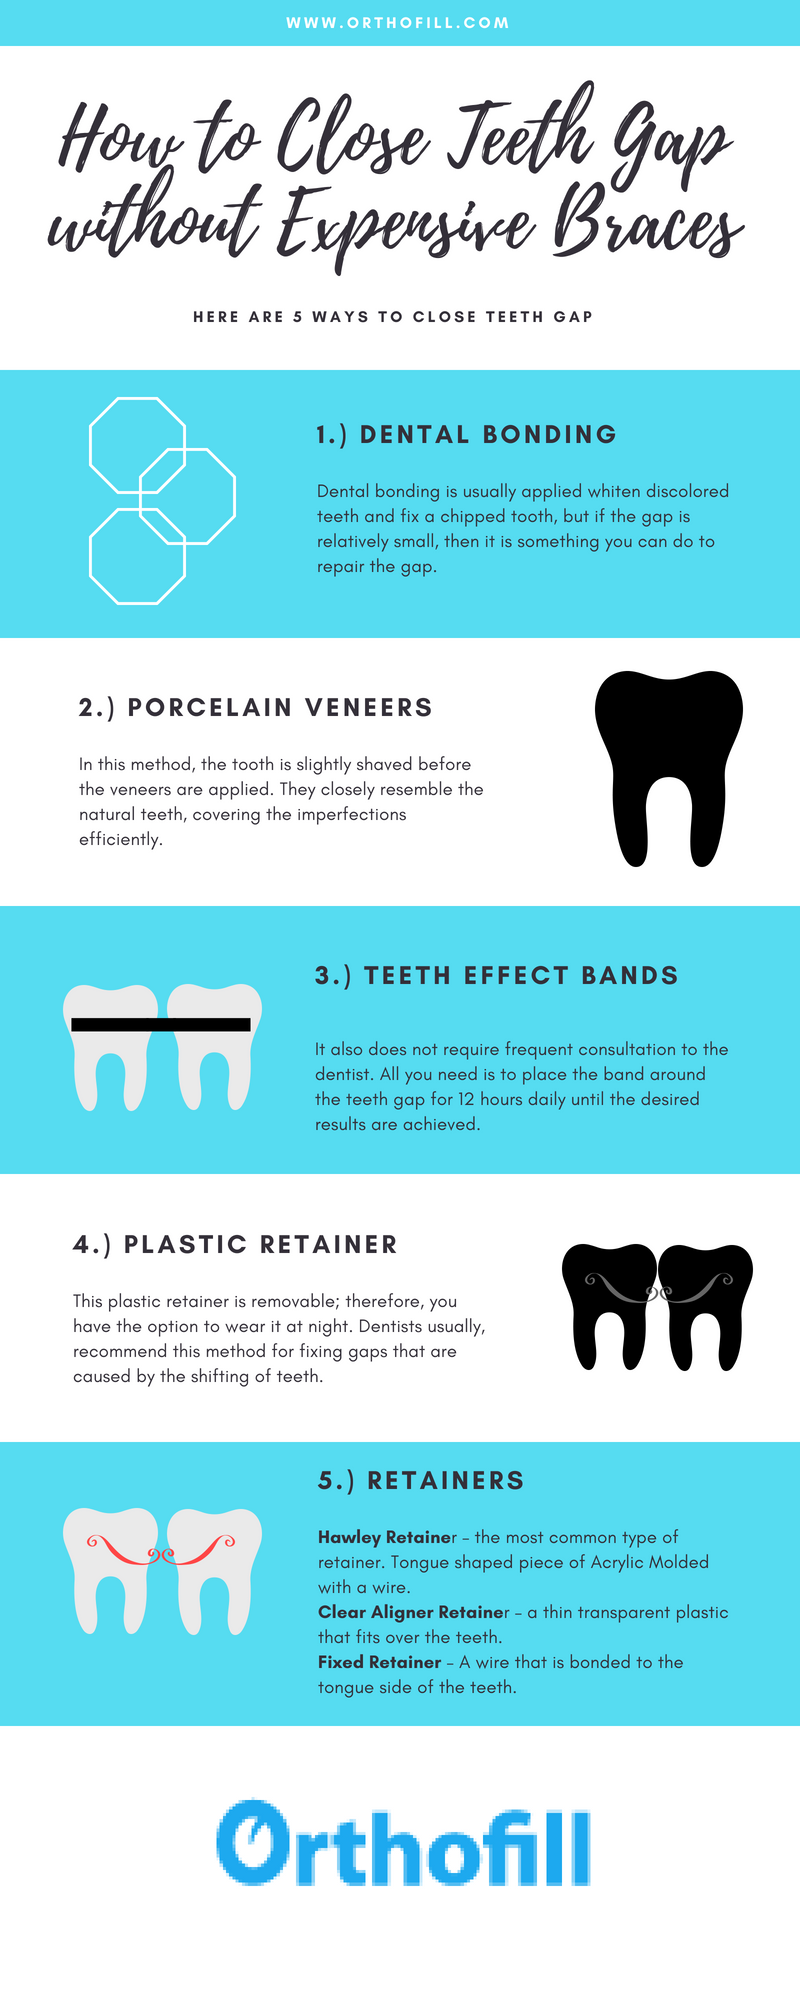 How to Close Teeth Gap without Expensive Braces! Take care